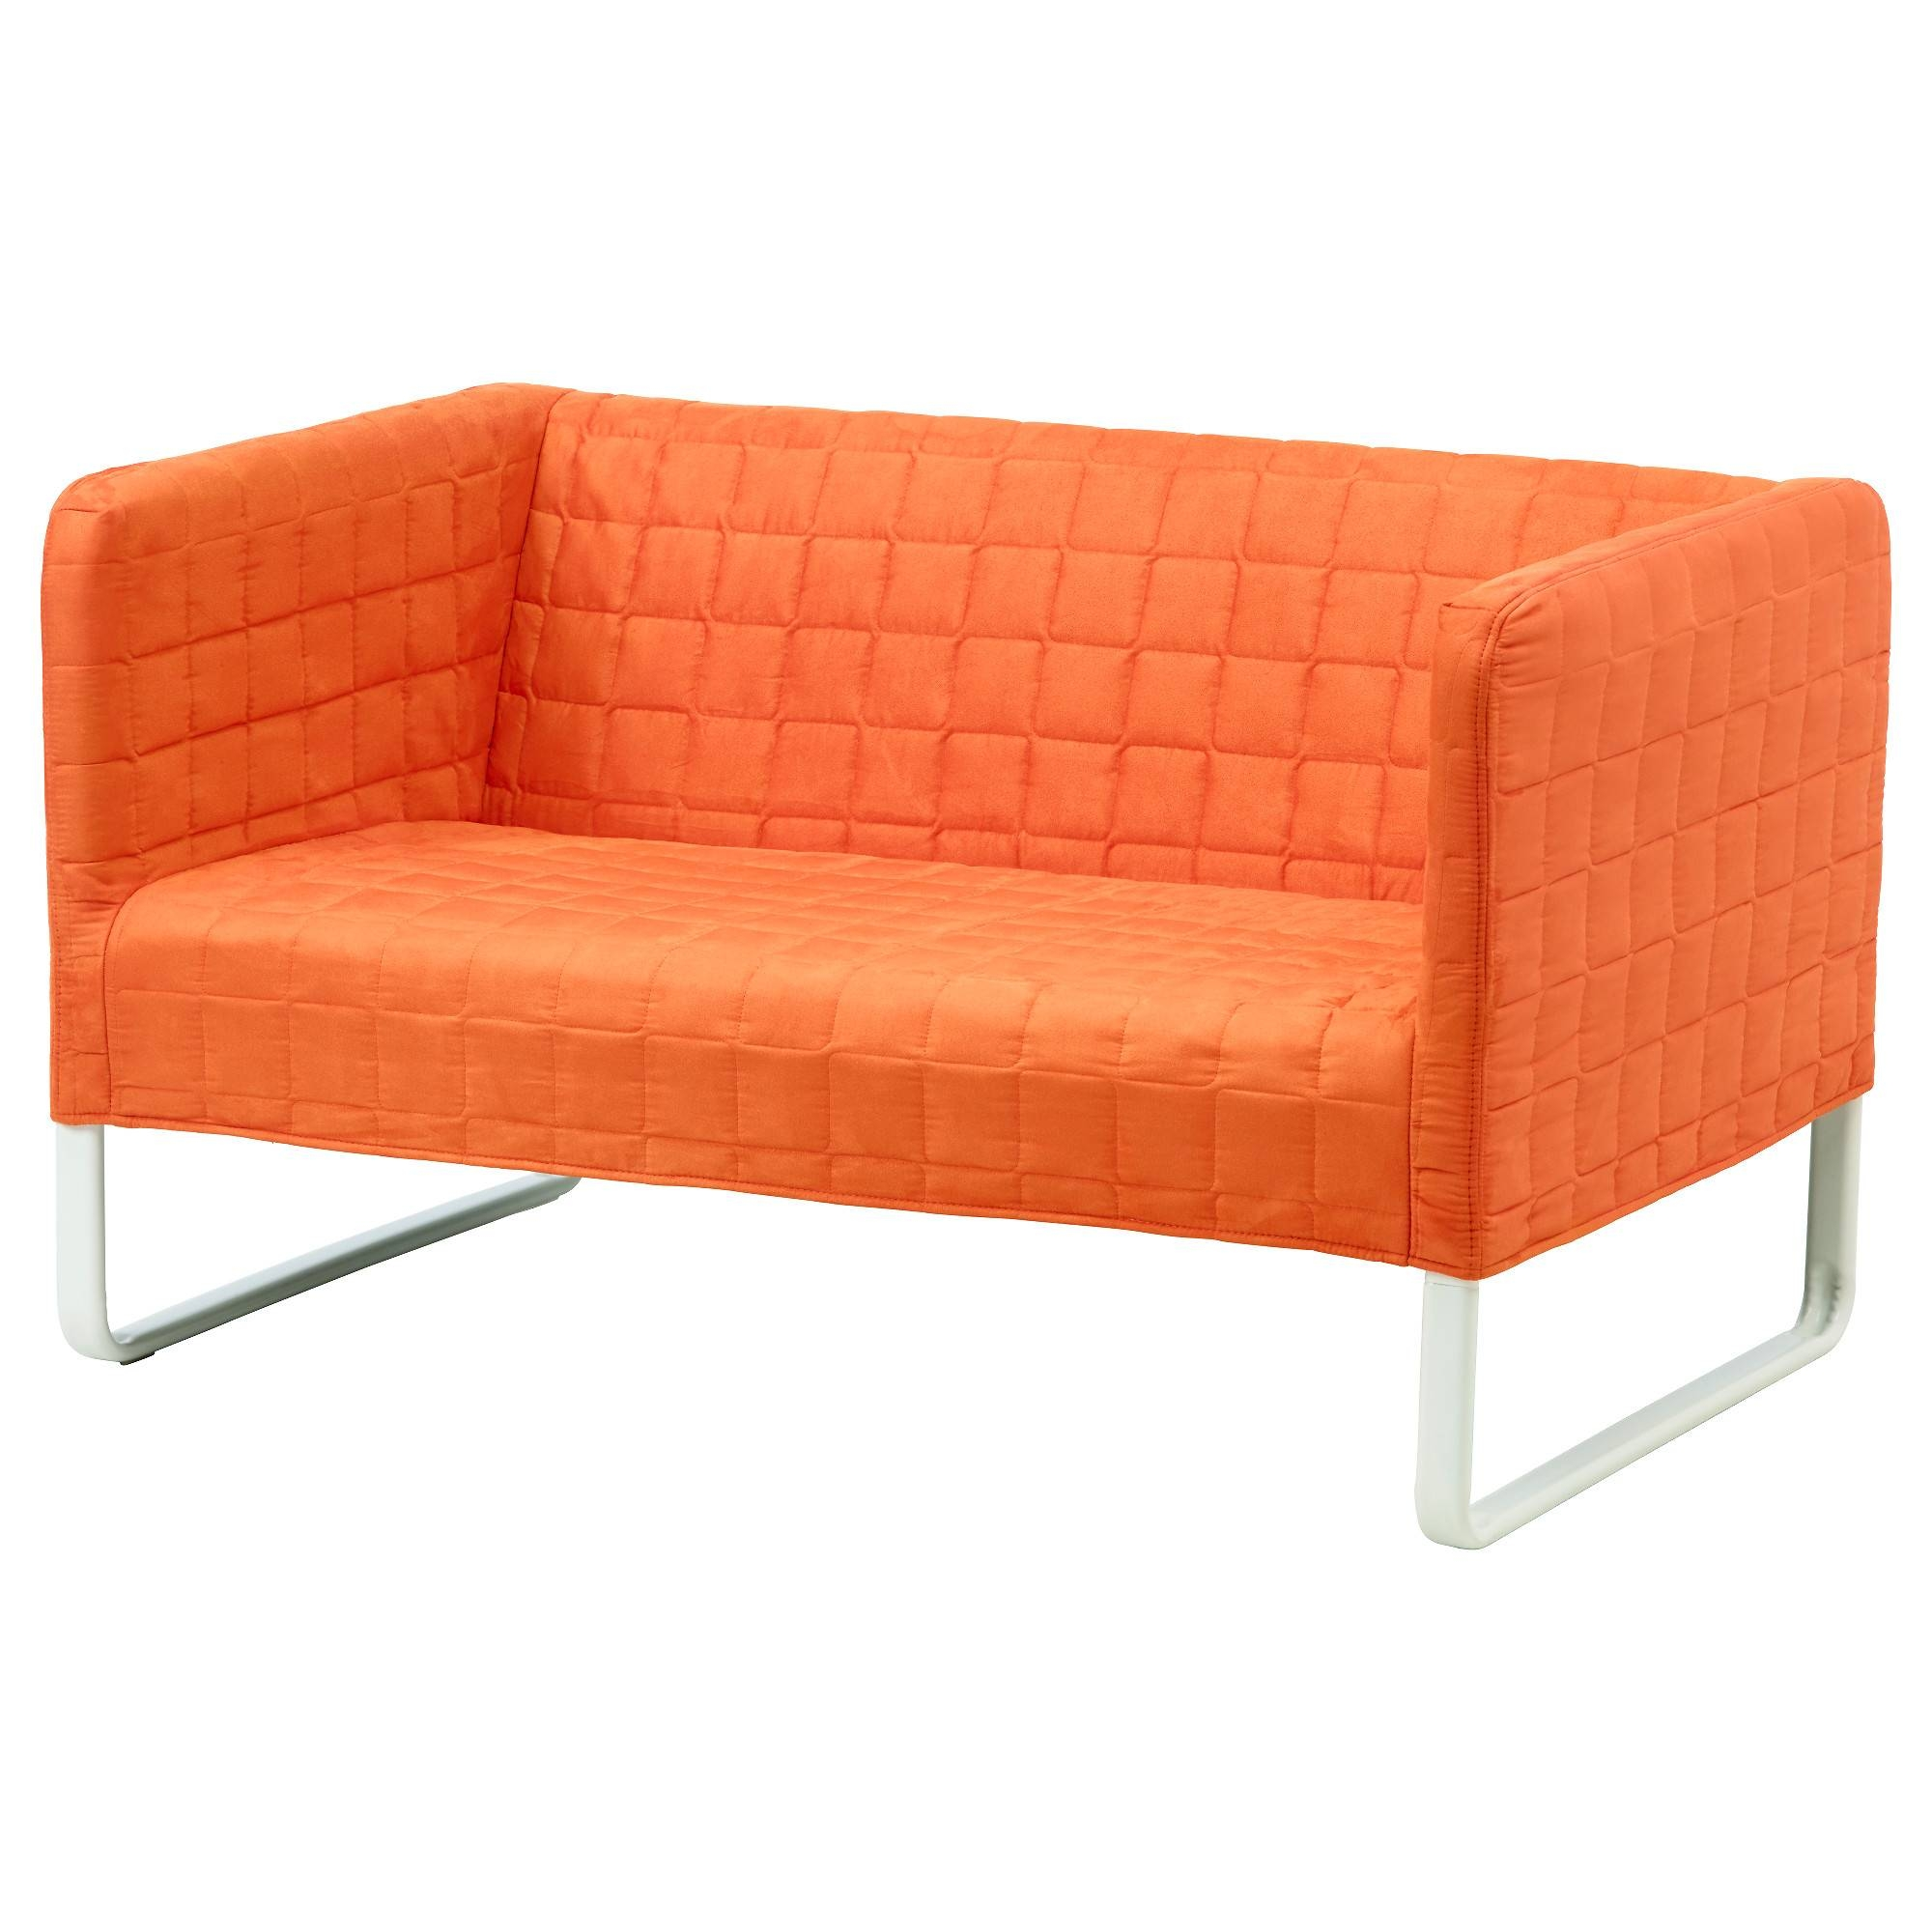 Small Sofa & 2 Seater Sofa | Ikea Within Small Sofas And Chairs (View 8 of 15)